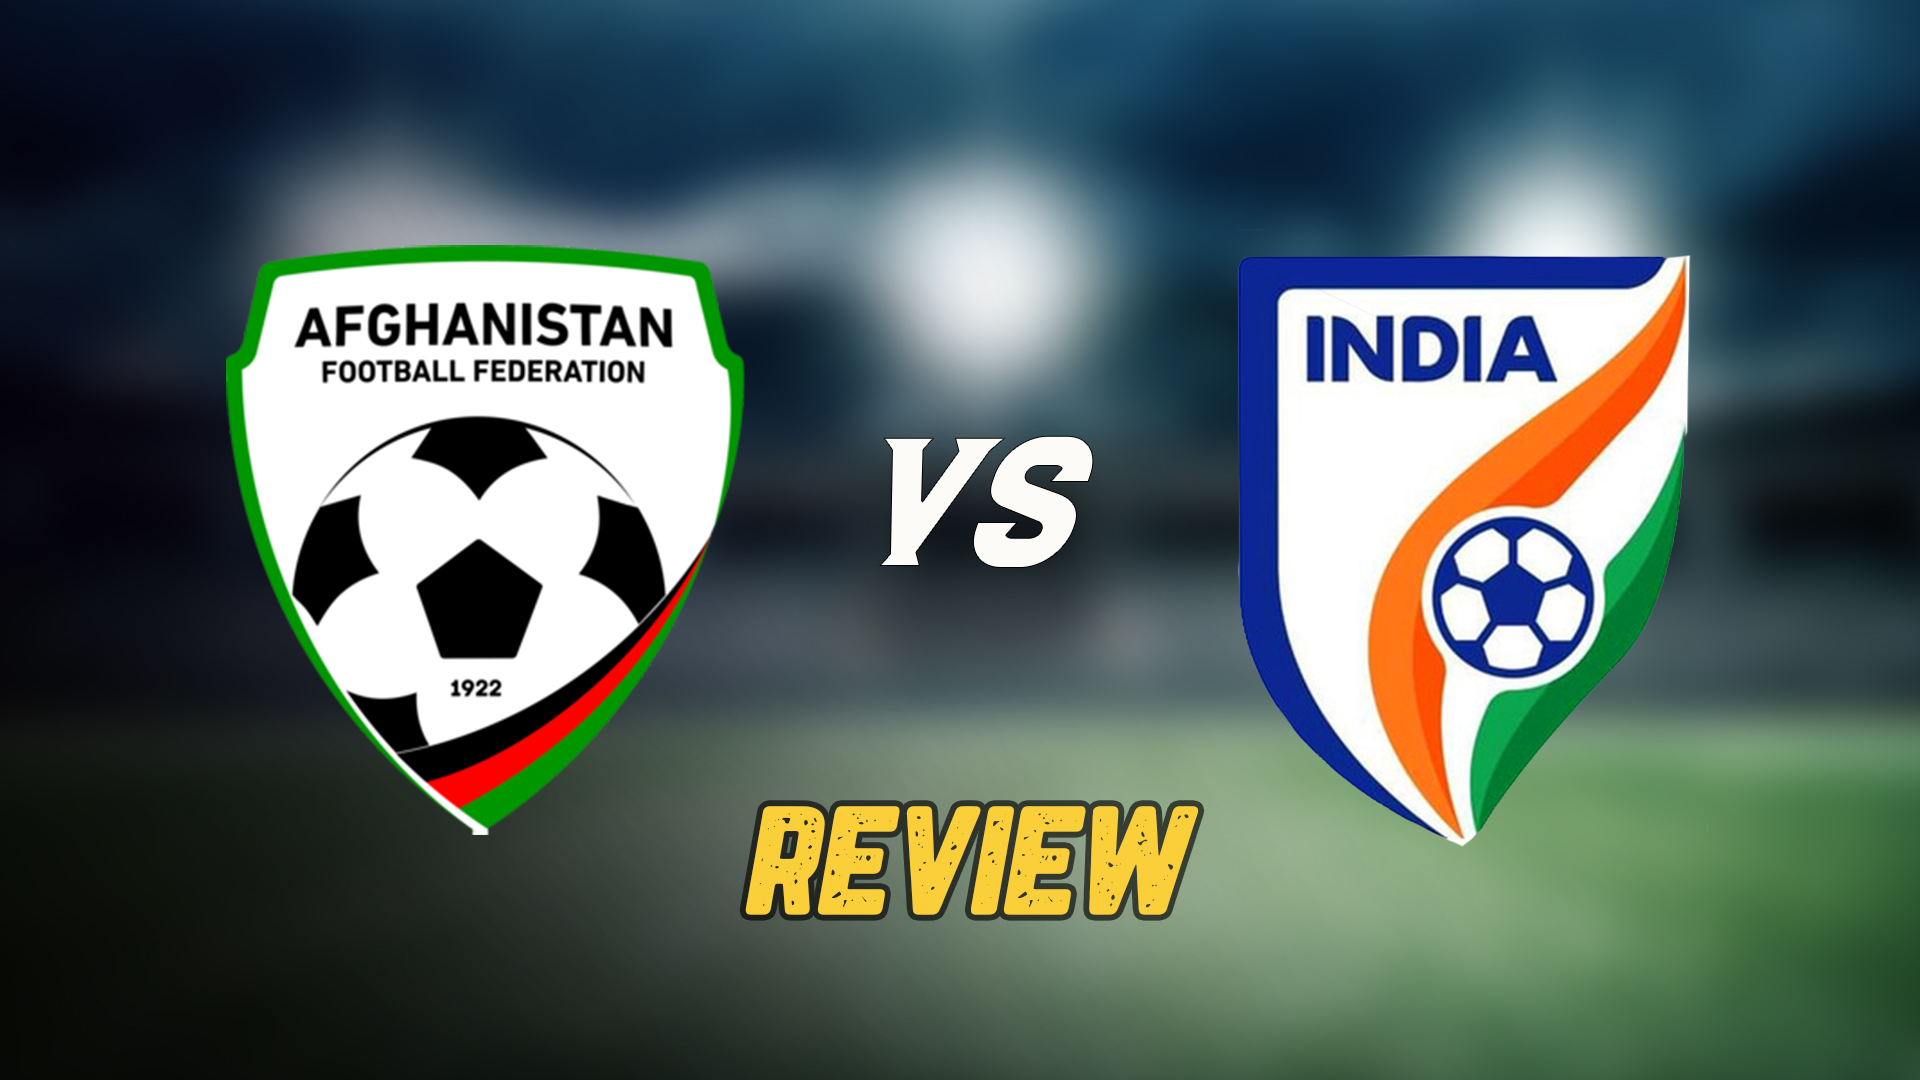 Afghanistan vs India FIFA World Cup qualifier football match review and analysis